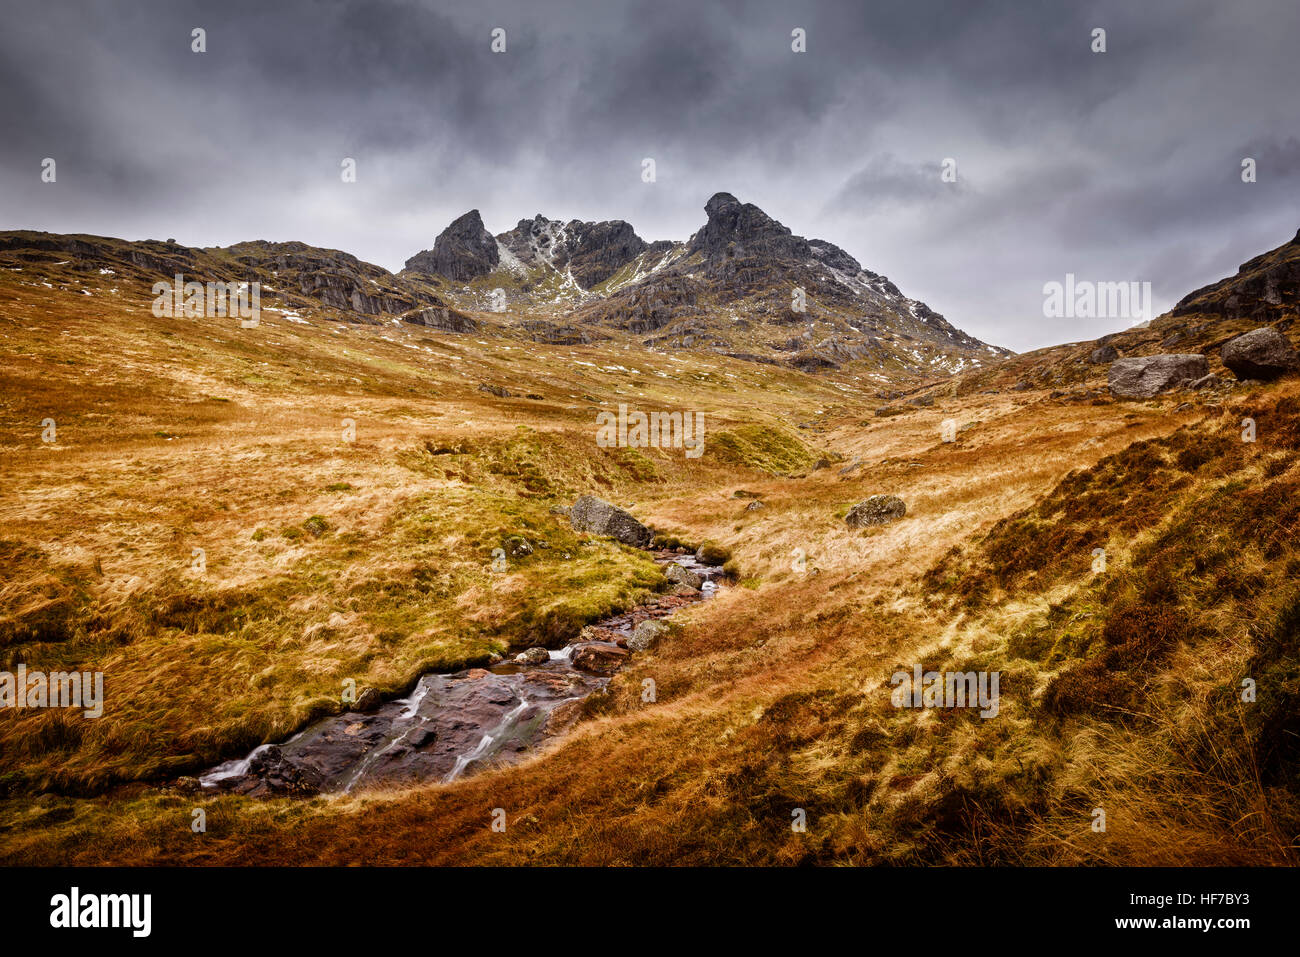 The Cobbler - Stock Image